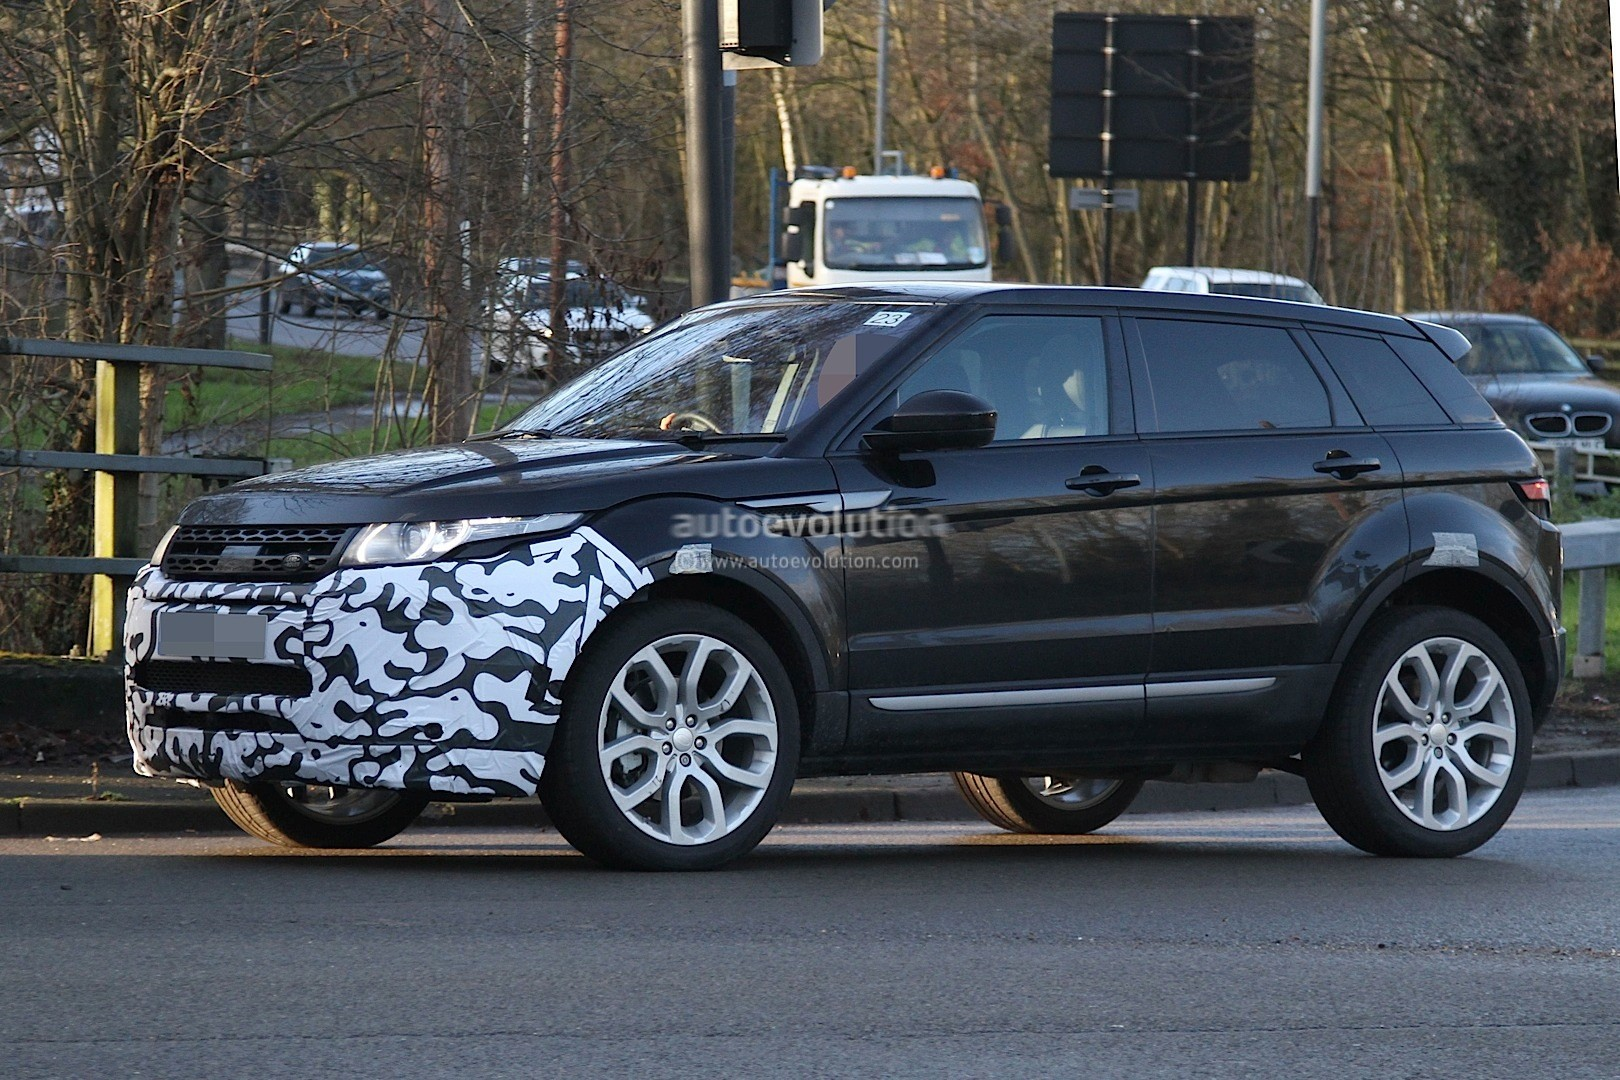 2016 range rover evoque mid life facelift spied ingenium diesel engines coming to us. Black Bedroom Furniture Sets. Home Design Ideas